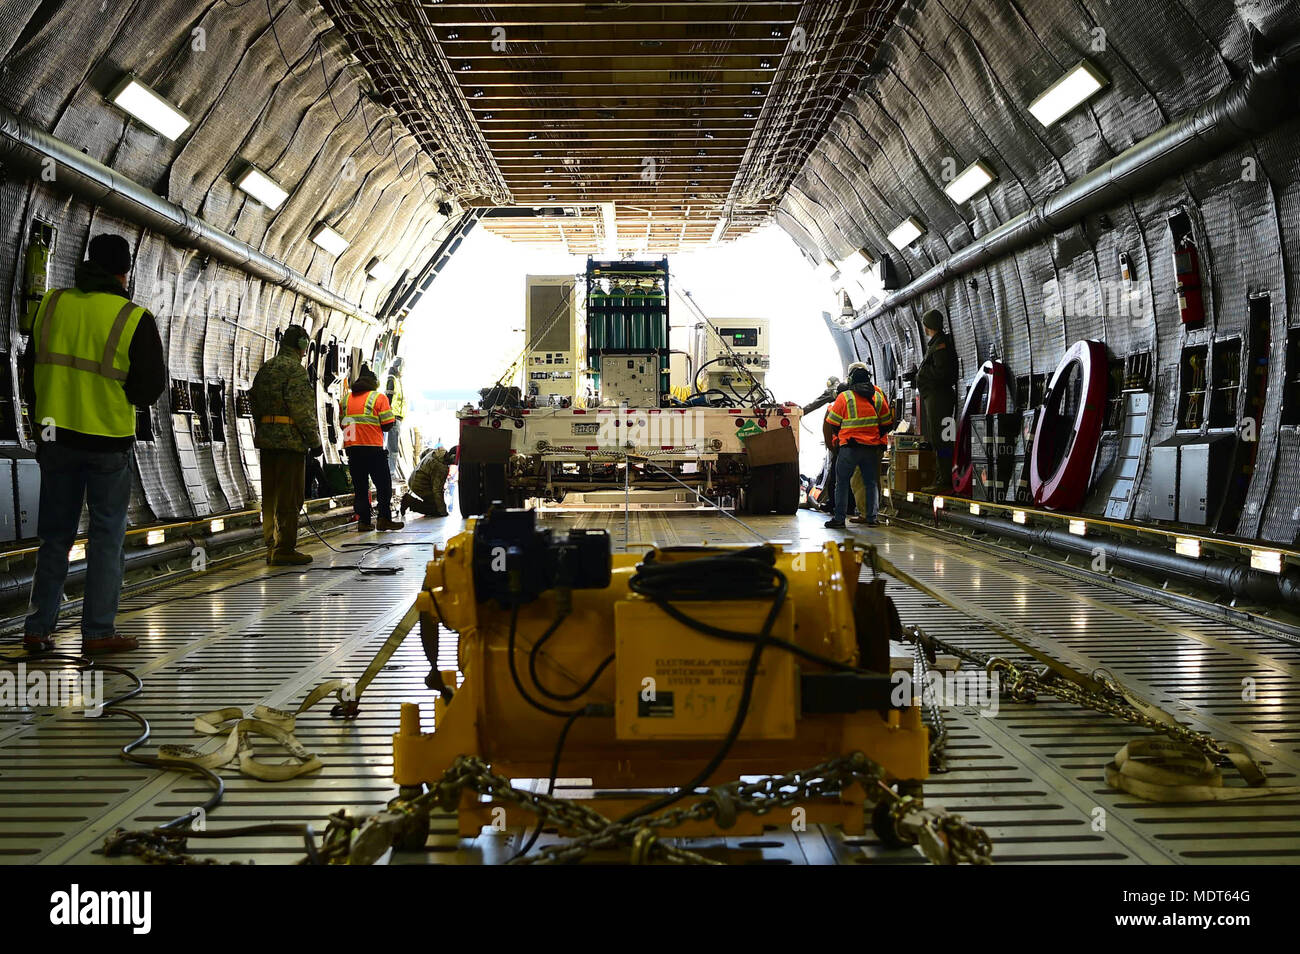 Personnel assisting with the loading of the Geostationary Operational Environmental Satellite – R Series into a C-5 Galaxy aircraft make sure the load is properly aligned before using the wench to pull it into the body of the aircraft Dec. 4, 2017, on Buckley Air Force Base, Colorado. A heavy duty wench capable of pulling well over 100 thousand pounds was used to tow the payload into a C-5 Galaxy for transport down to Cape Canaveral, Florida. (U.S. Air Force photo by Senior Airman Luke W. Nowakowski) - Stock Image